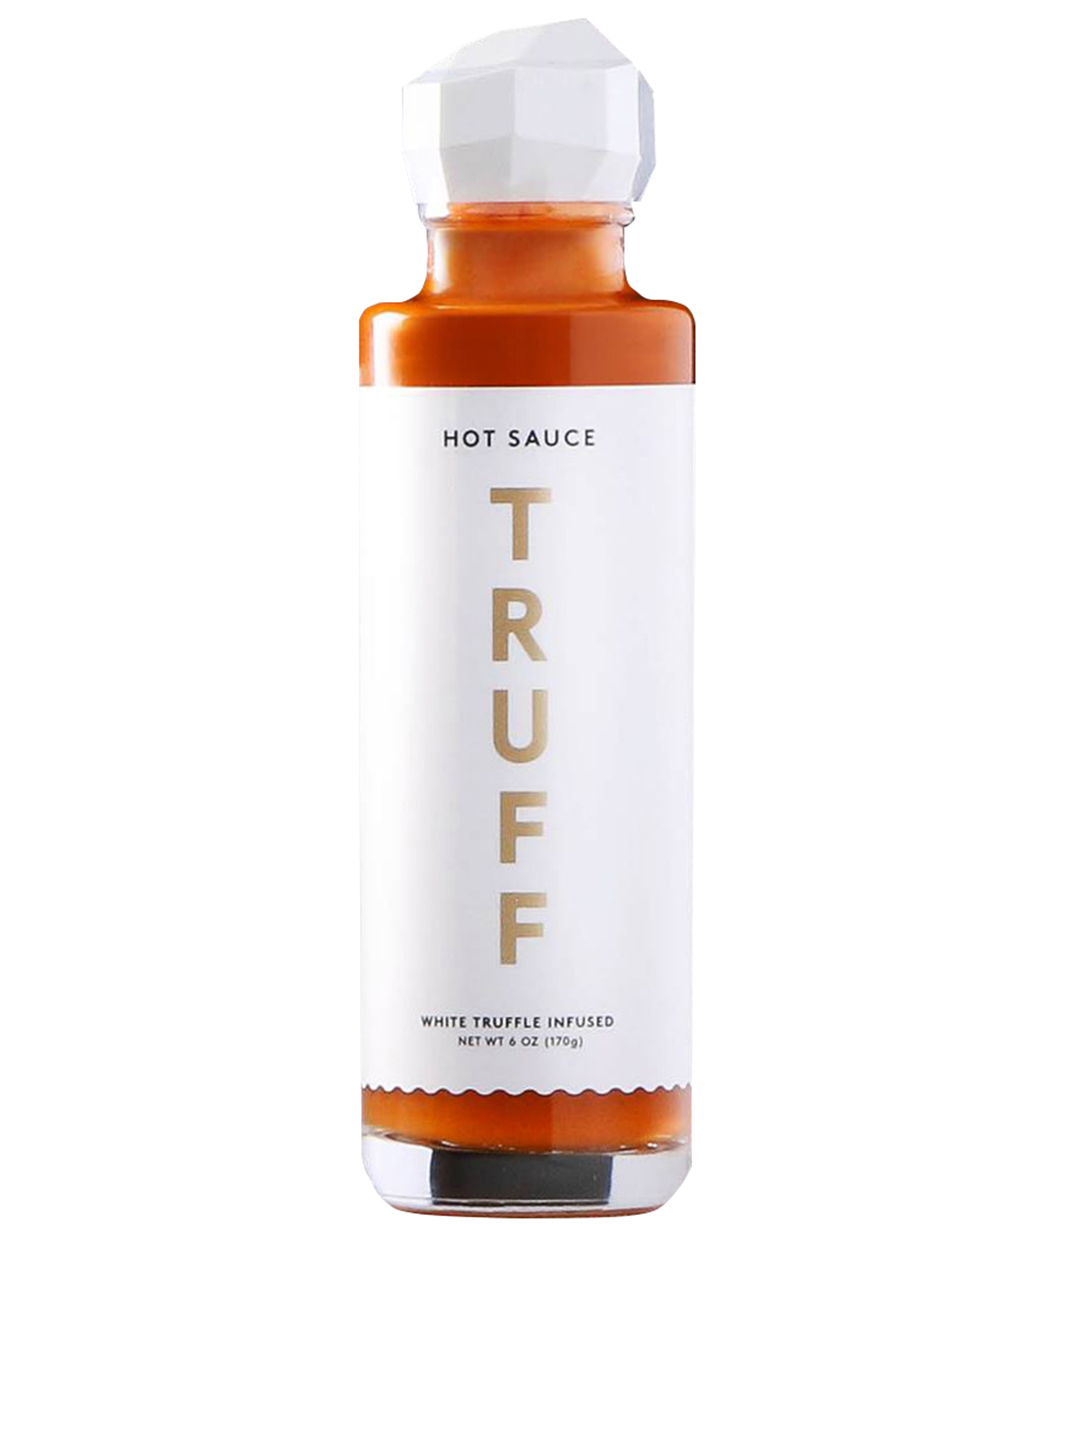 TRUFF White Truffle Infused Hot Sauce Gifts